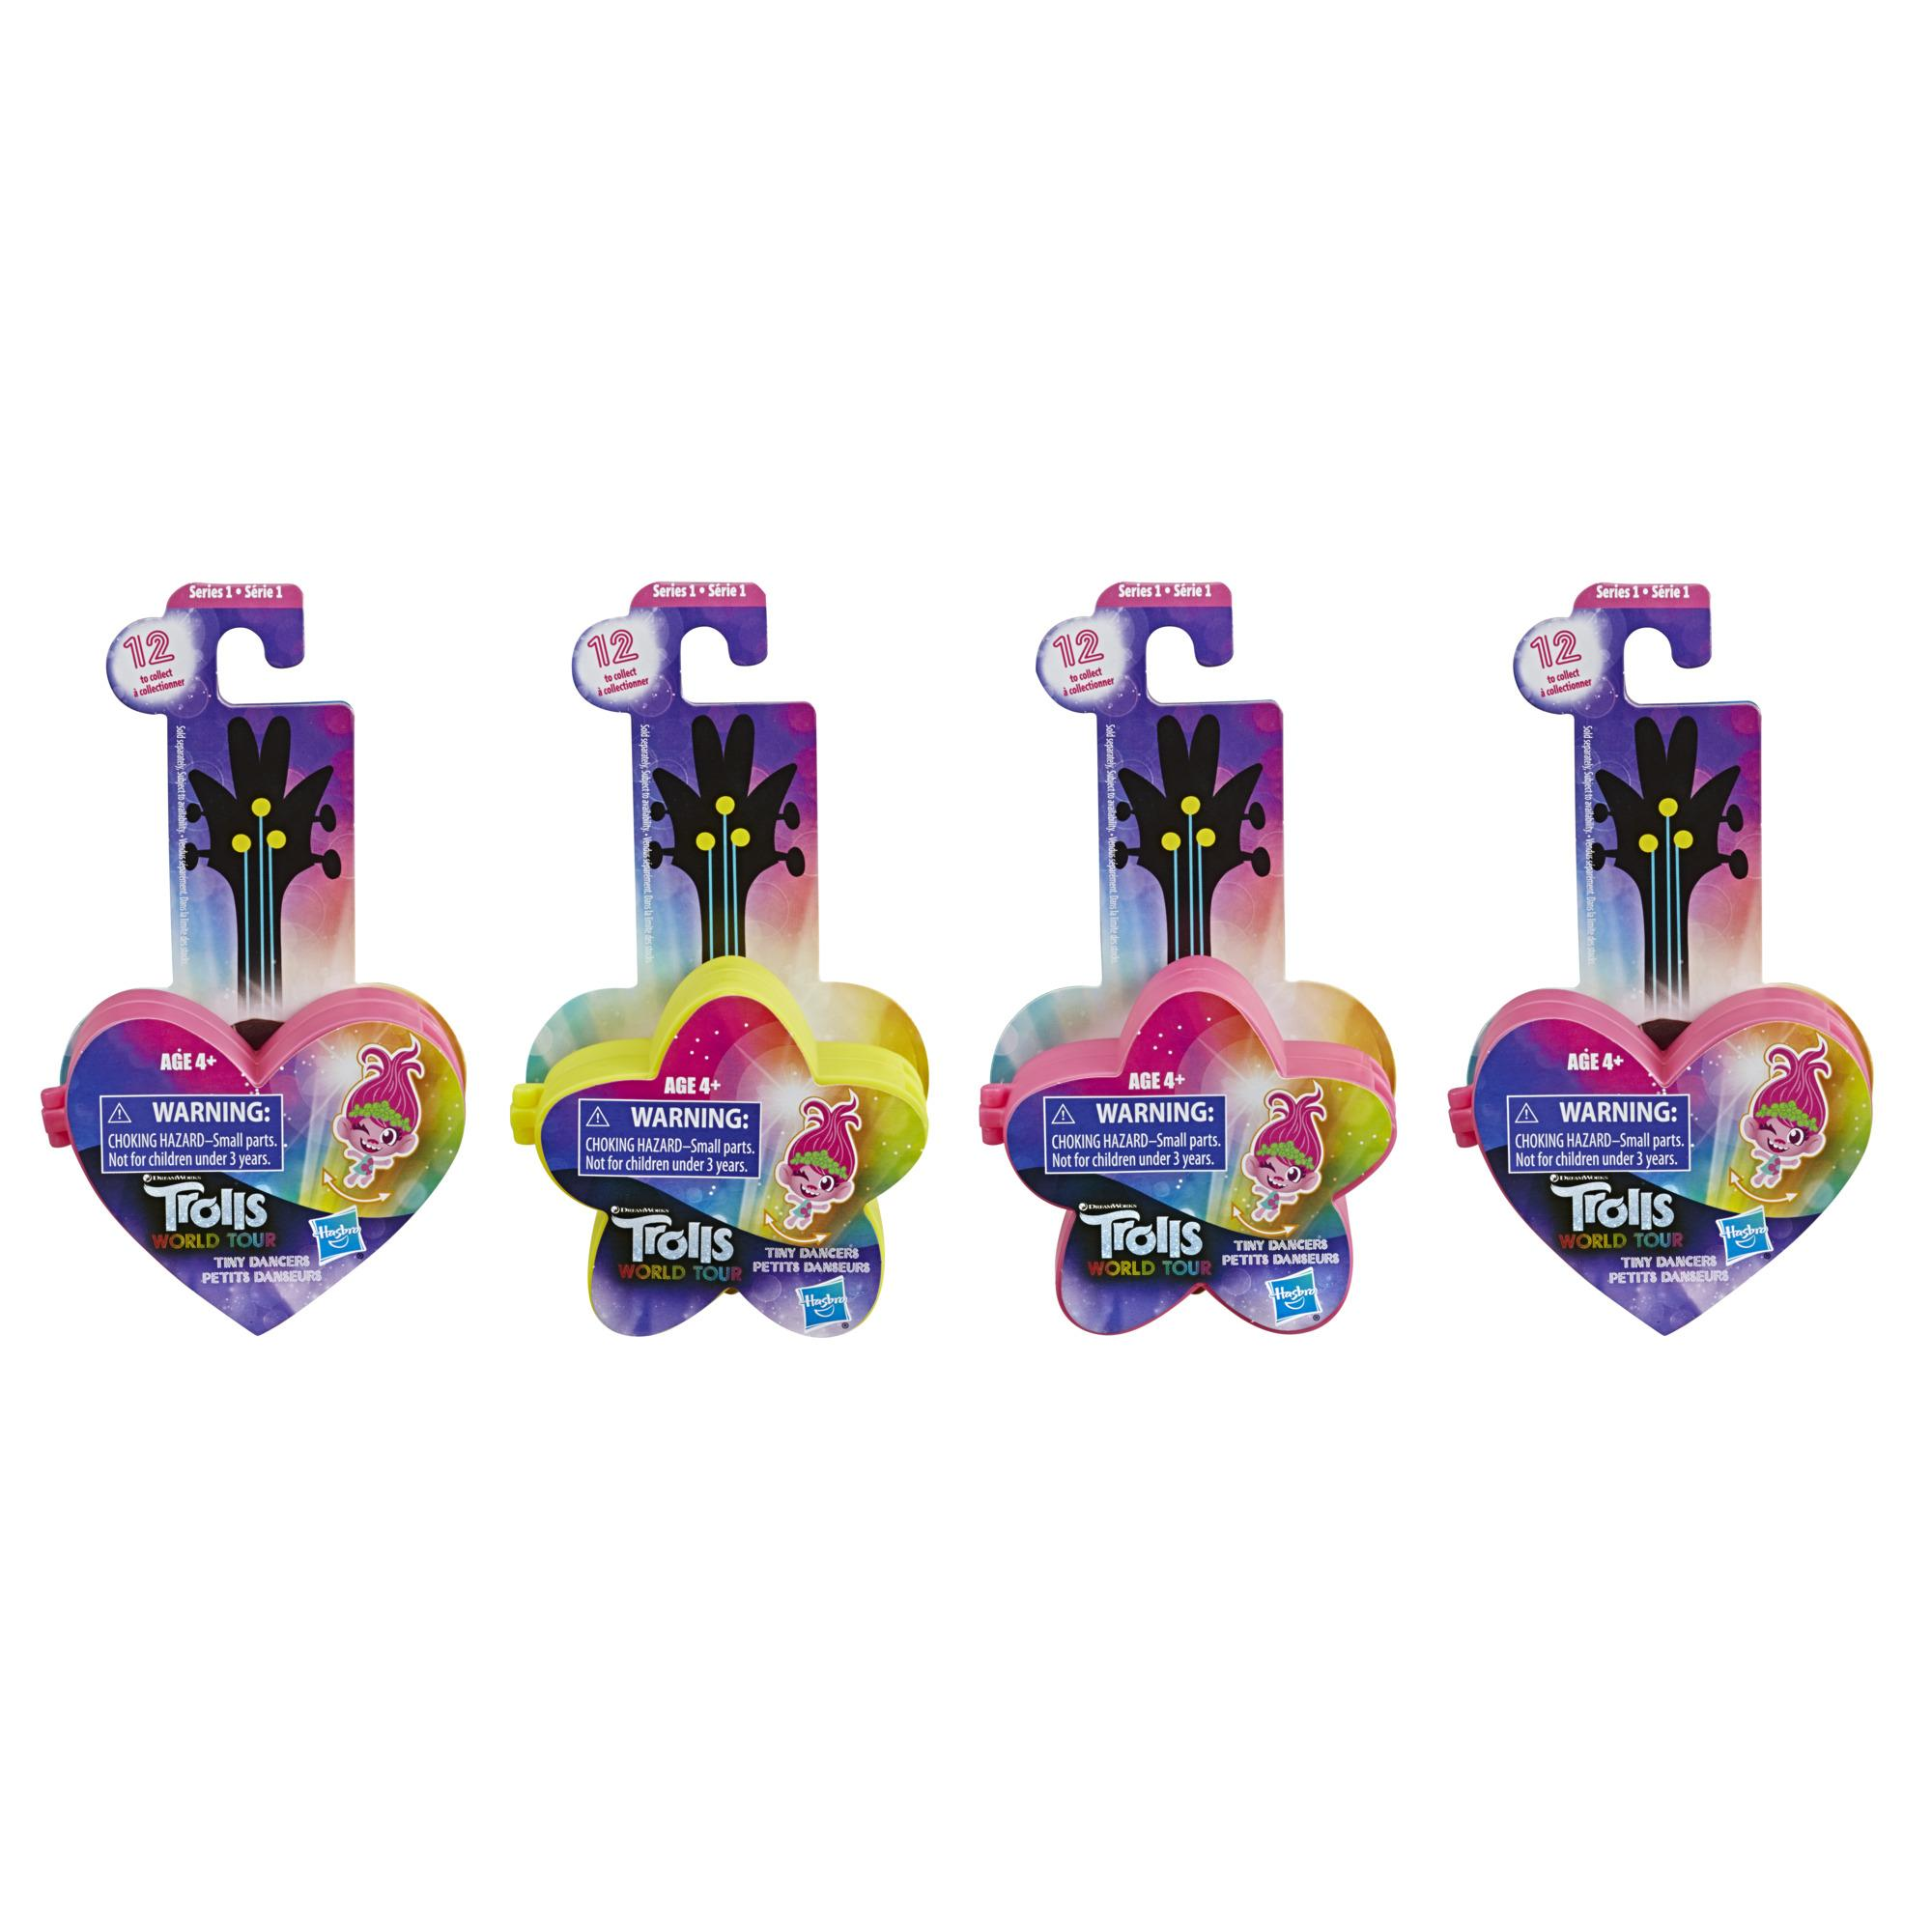 DreamWorks Trolls World Tour Tiny Dancers Surprise 4 Pack Series 1, 4 Tiny Dancers Dolls, Toy for Kids 4 and Up